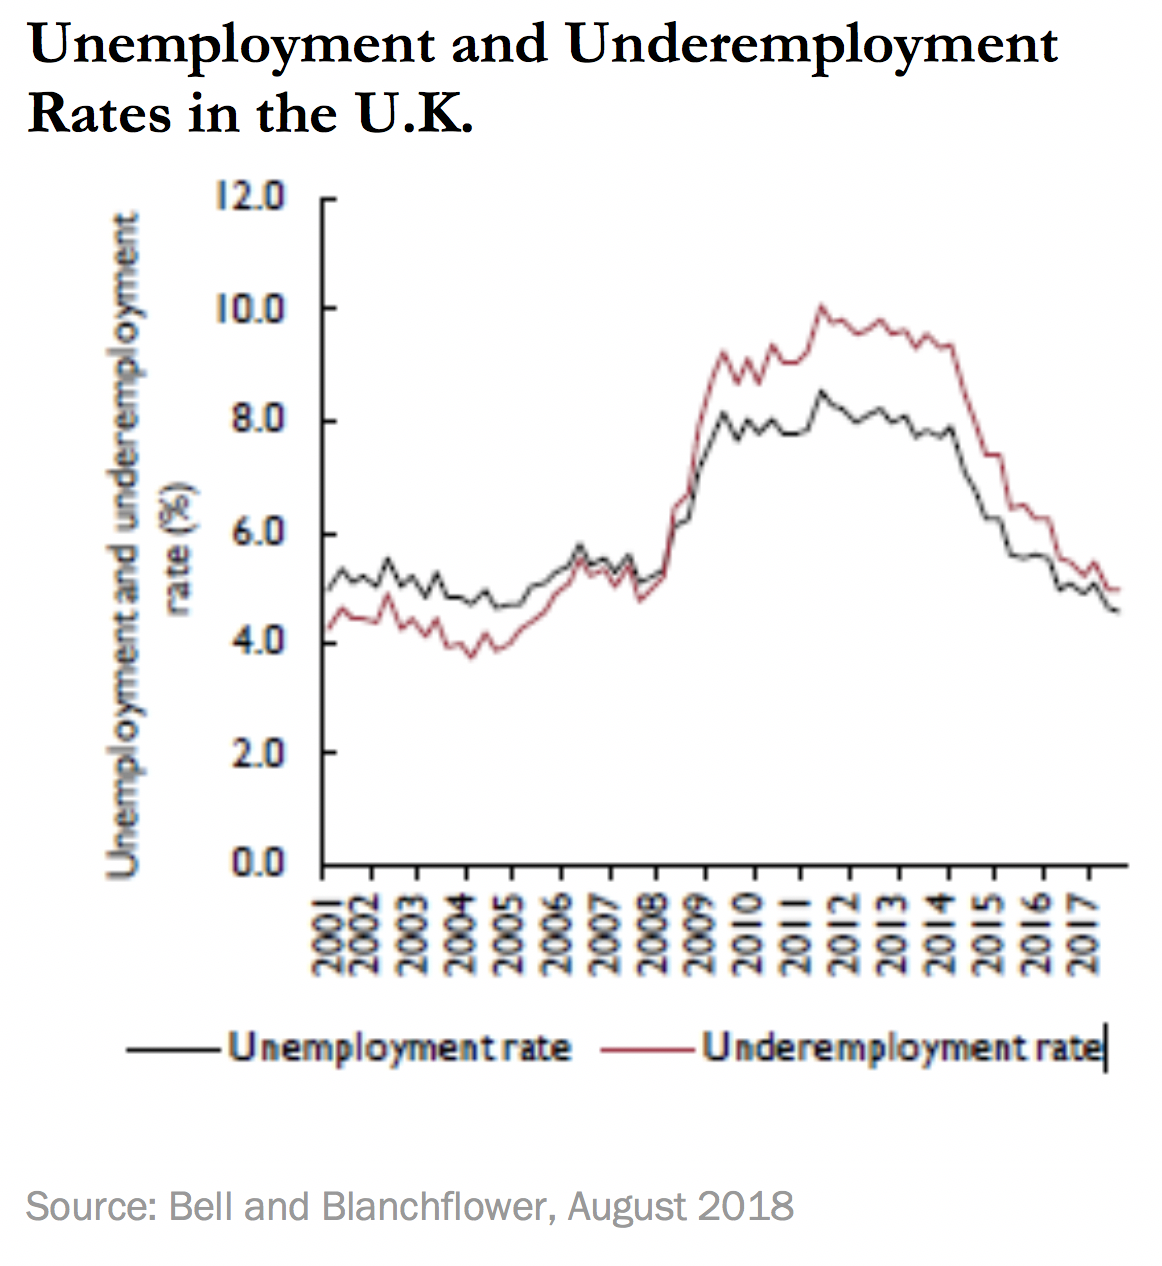 Unemployment and Underemployment Rates in the U.K.